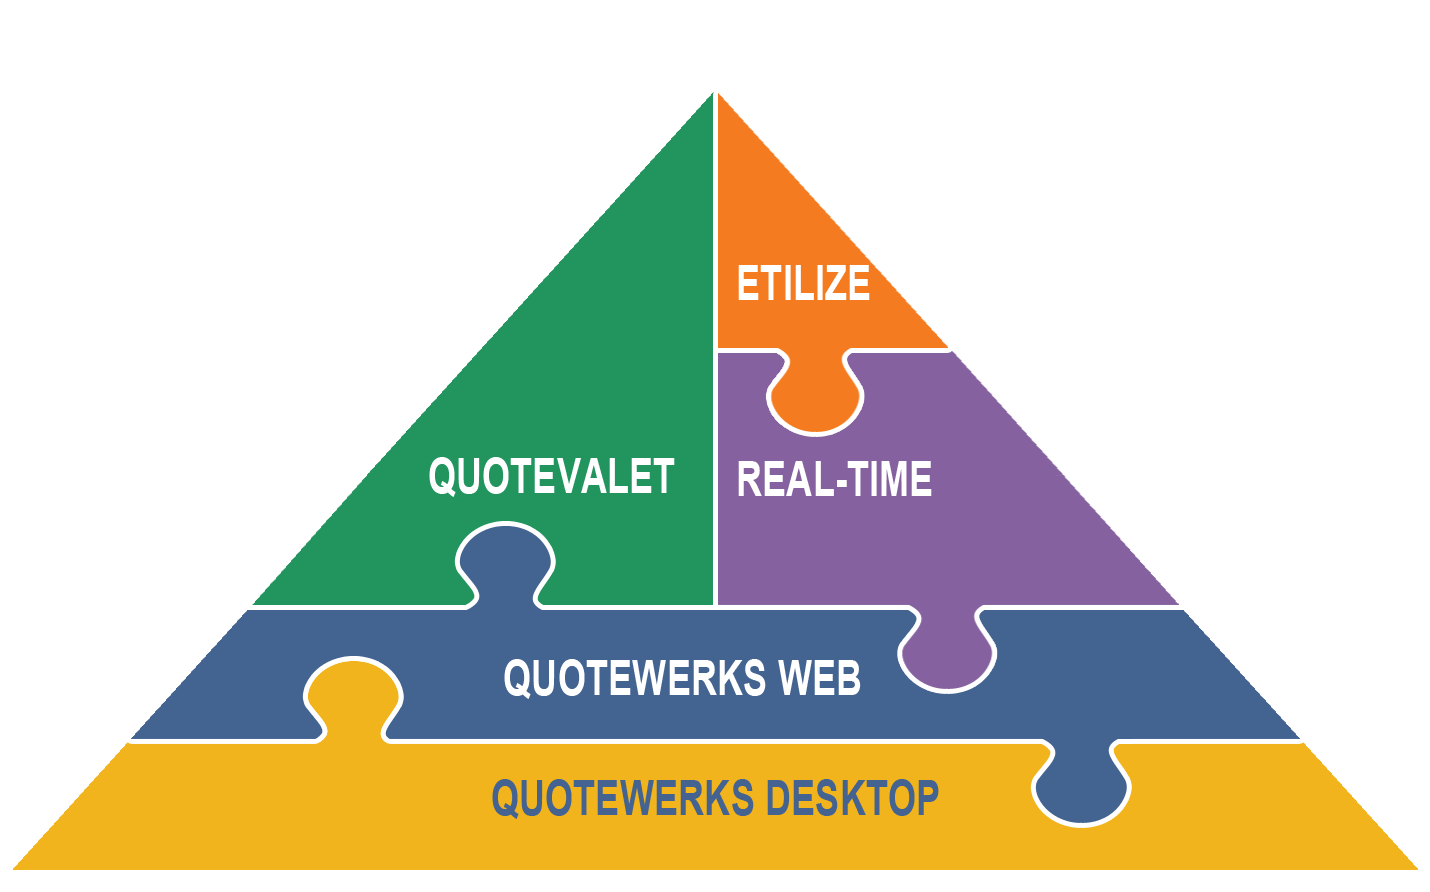 Do you quote or use products or services from Kaseya, GFI, Labtech, Chartec, Cisco, Intronis, Level Platforms, N-Able, Reflexion, SpamSoap, Zenith or others? Managed Service Providers (MSPs) use QuoteWerks with PSAs like Autotask, CommitCRM, ConnectWise, and TigerPaw to create quotes and proposals when bidding on recurring revenue (RMM) jobs for Hosting, Backup, Cloud Services, etc.